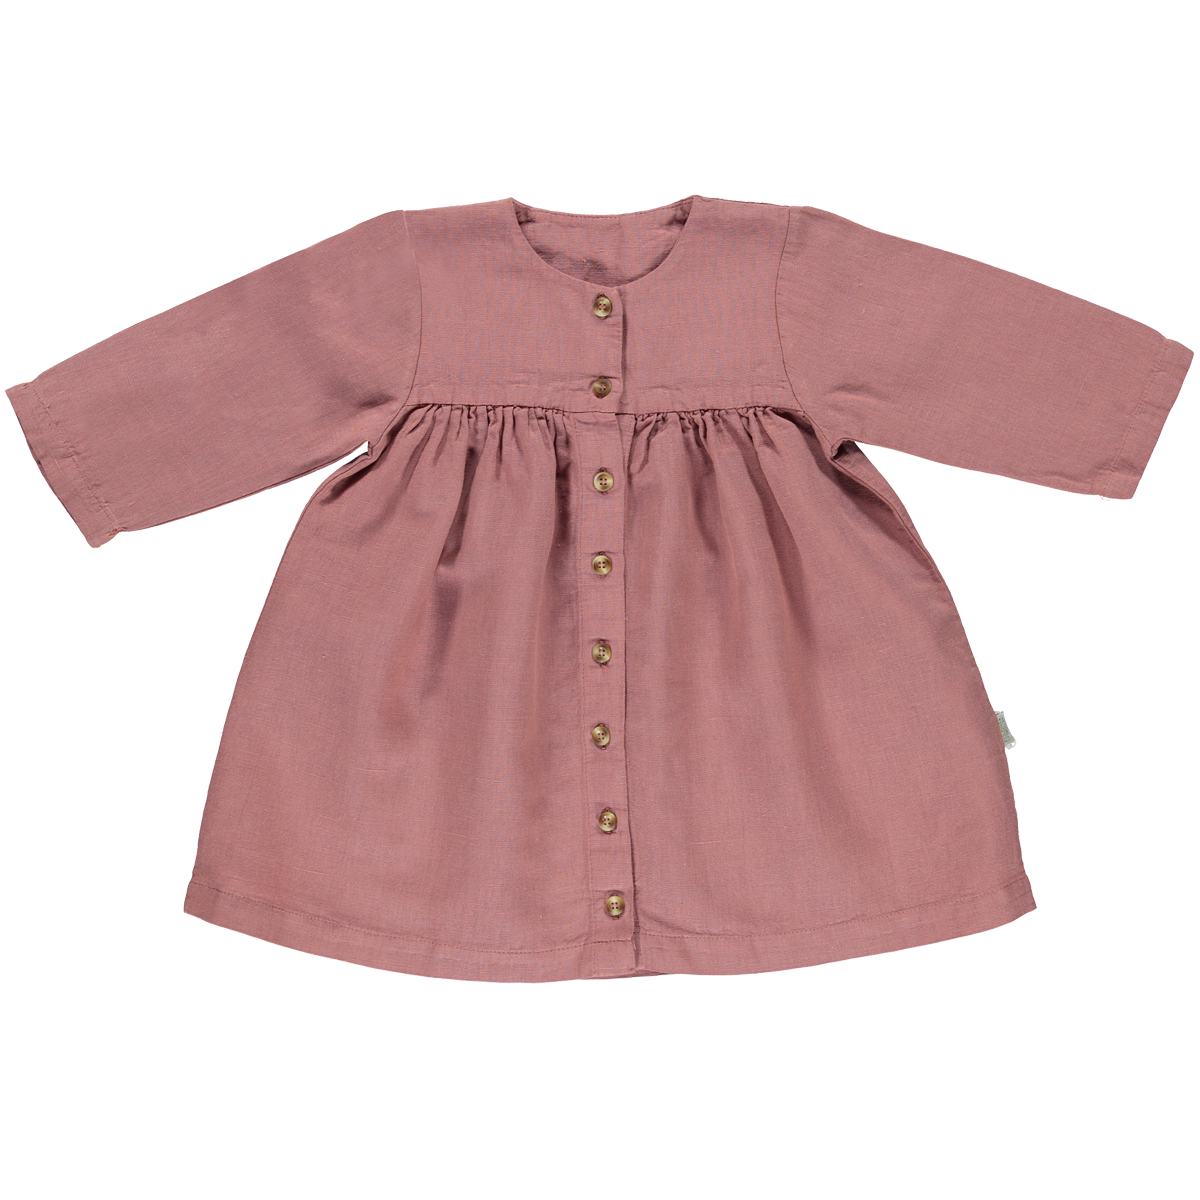 Poudre Organic Dress Aubépine, light mahogany